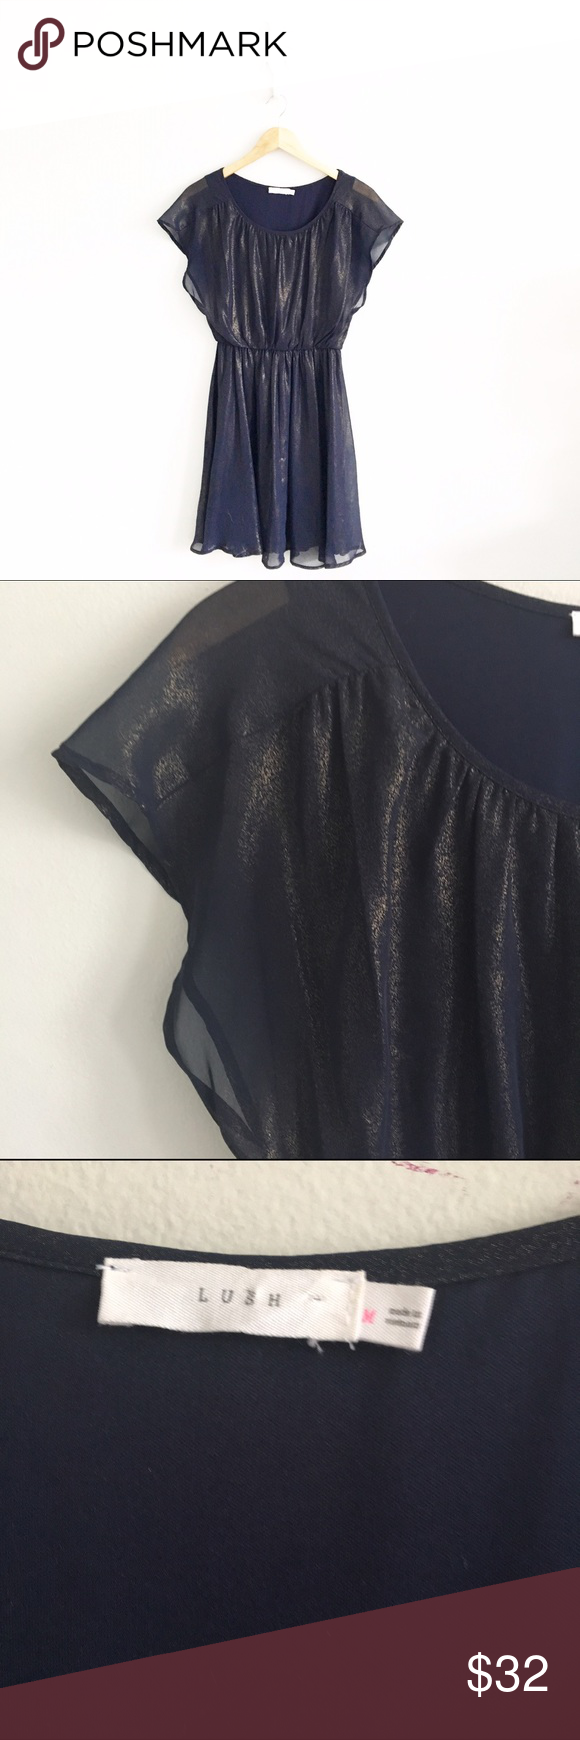 """LUSH Navy Gold Shimmer Butterfly Sleeve Dress Excellent condition with no rips or stains, please see all pictures for an accurate description of condition. First picture filtered. Size medium. Length is approx. 33"""". Chest measures approx. 19"""" laying flat from underarm to underarm. 100% polyester. *1121160399* Lush Dresses Mini"""